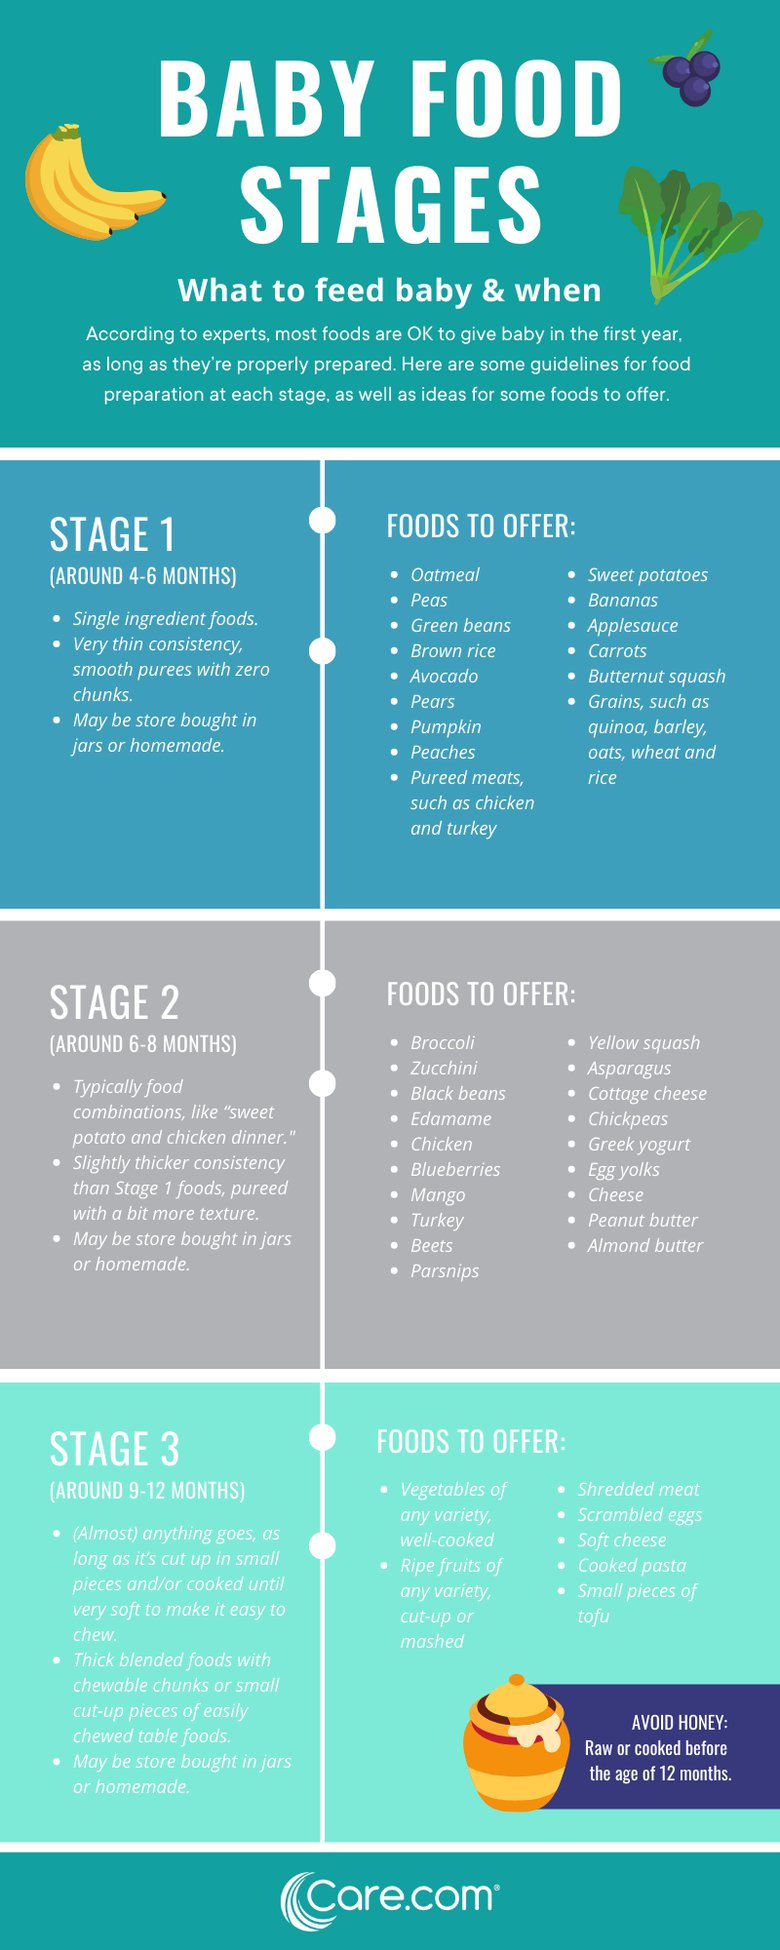 Stage 3 Baby Food When Is A Child Ready To Try Thicker Solids Care Com